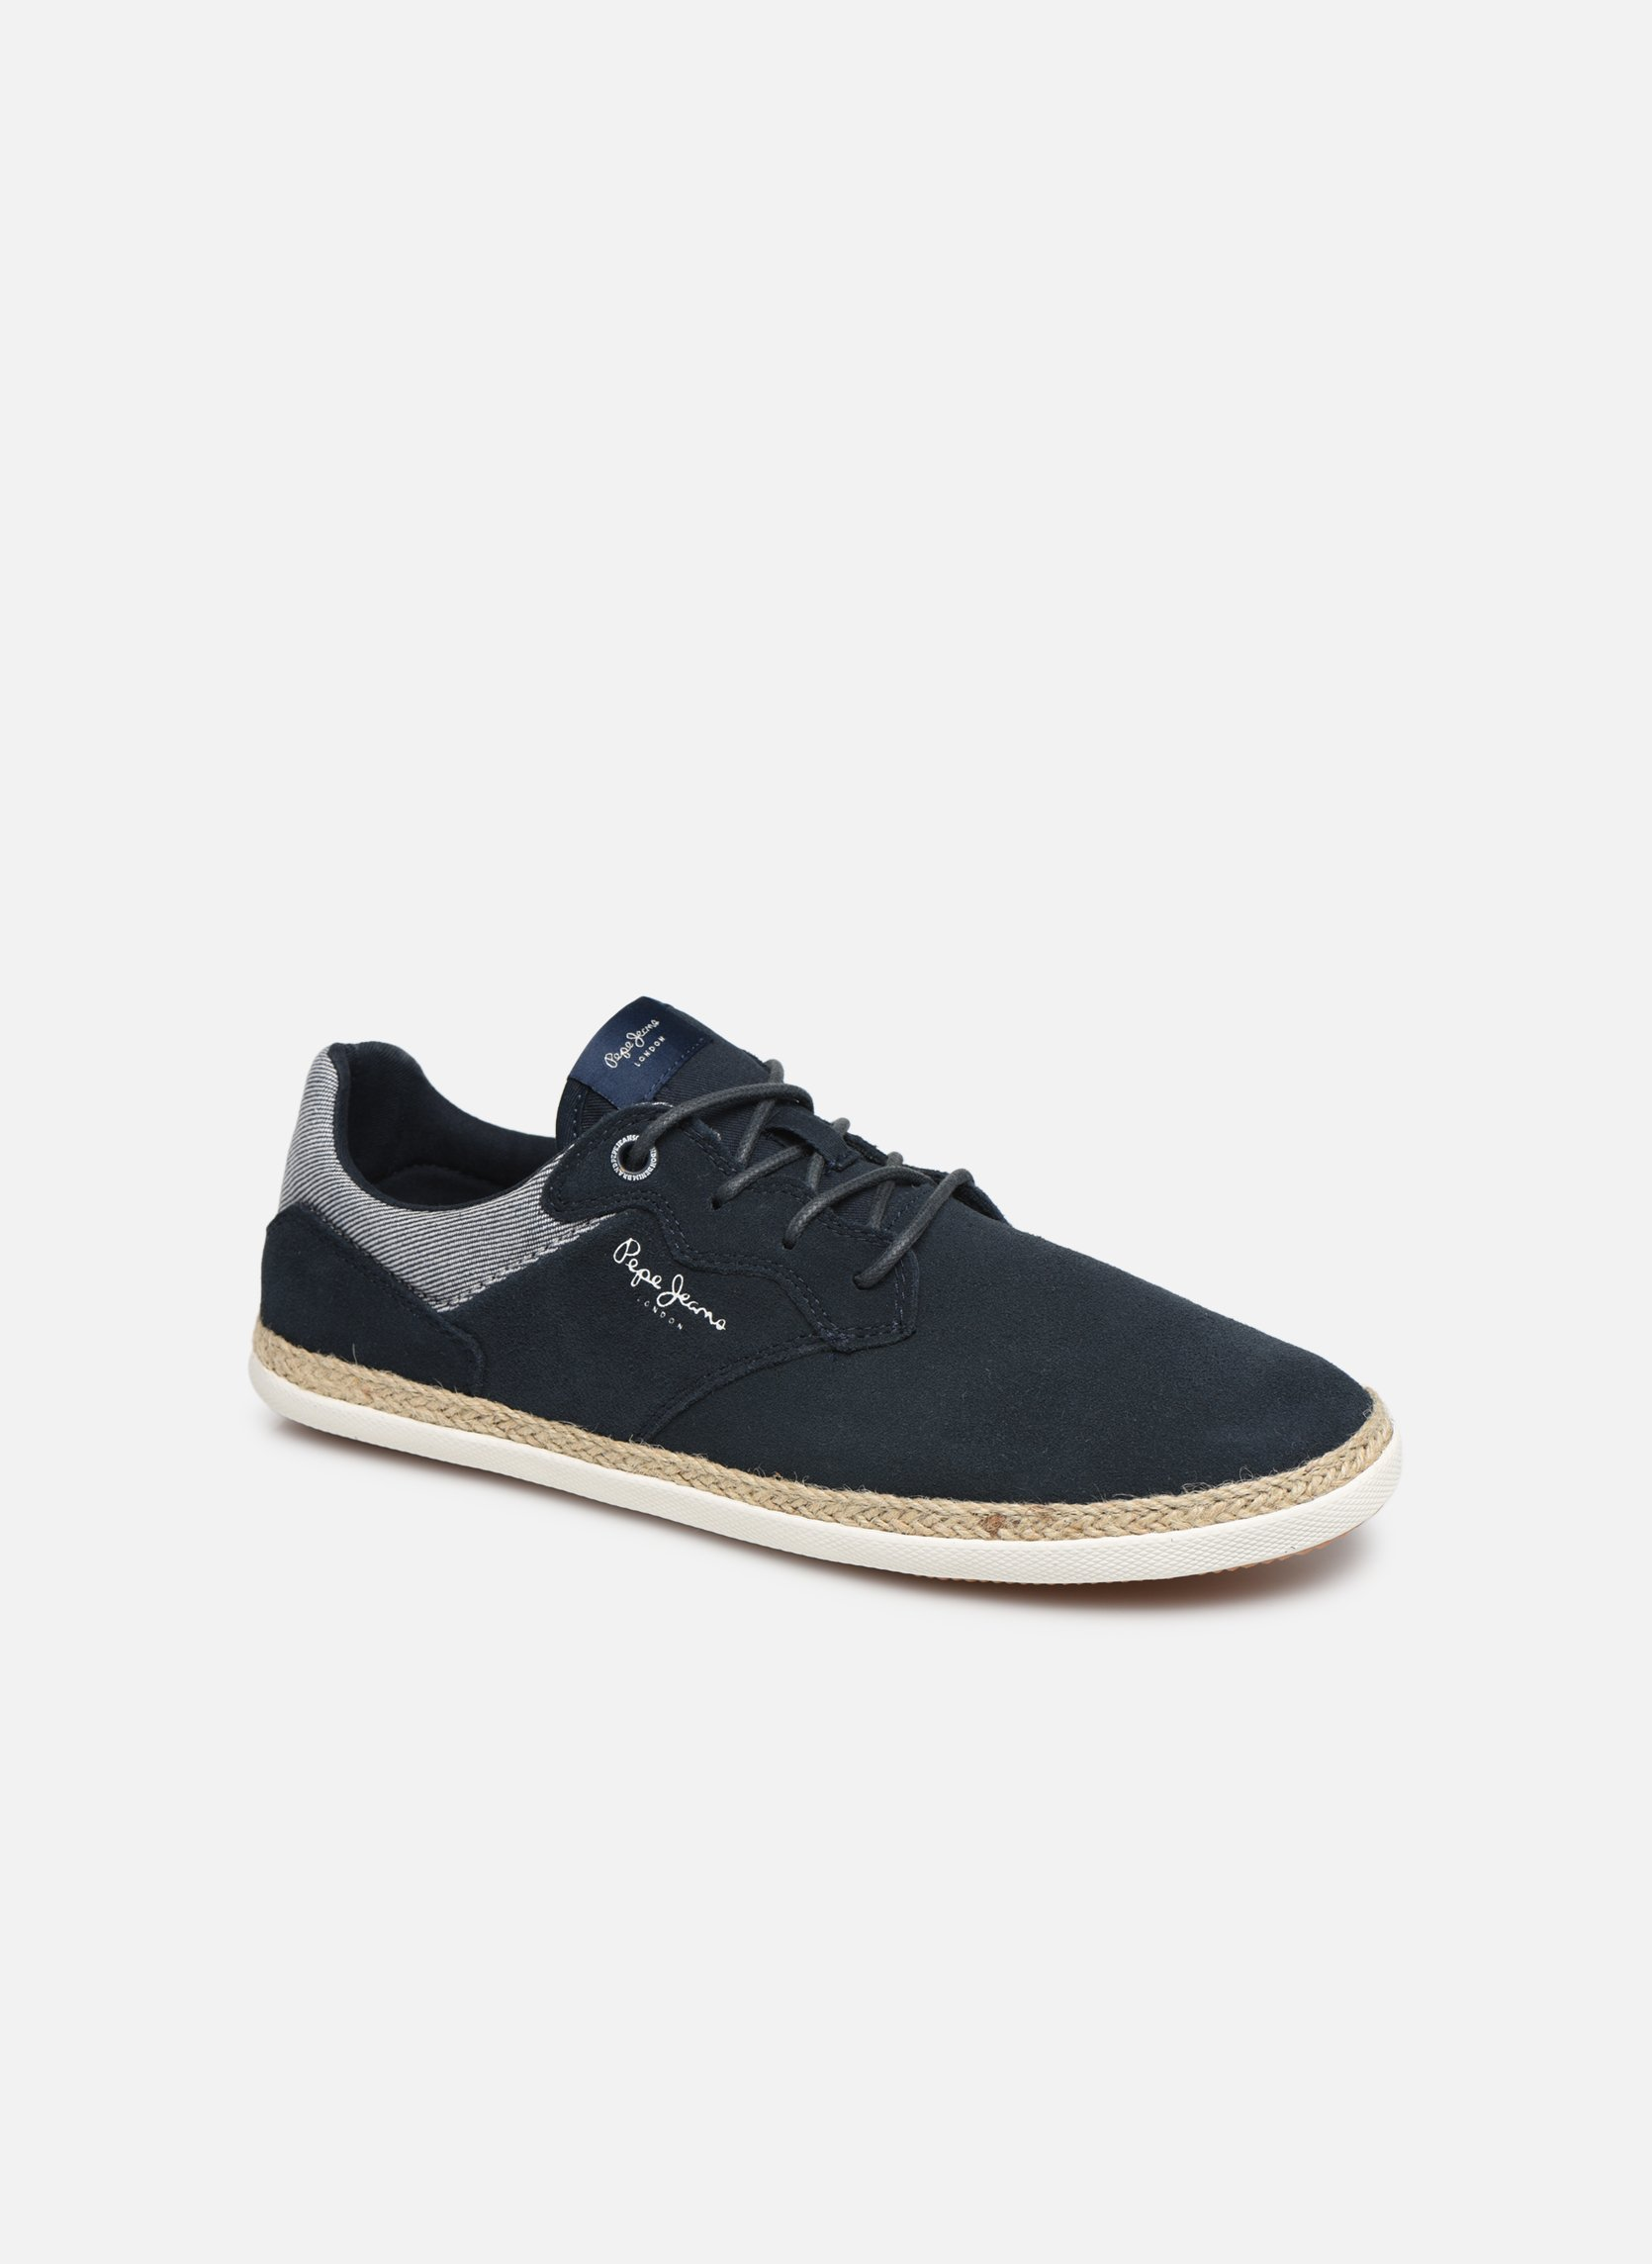 c72458db Pepe Men's jeans Trainers bluee in Lace-up Ker Maui b2b04wfzg33062 ...